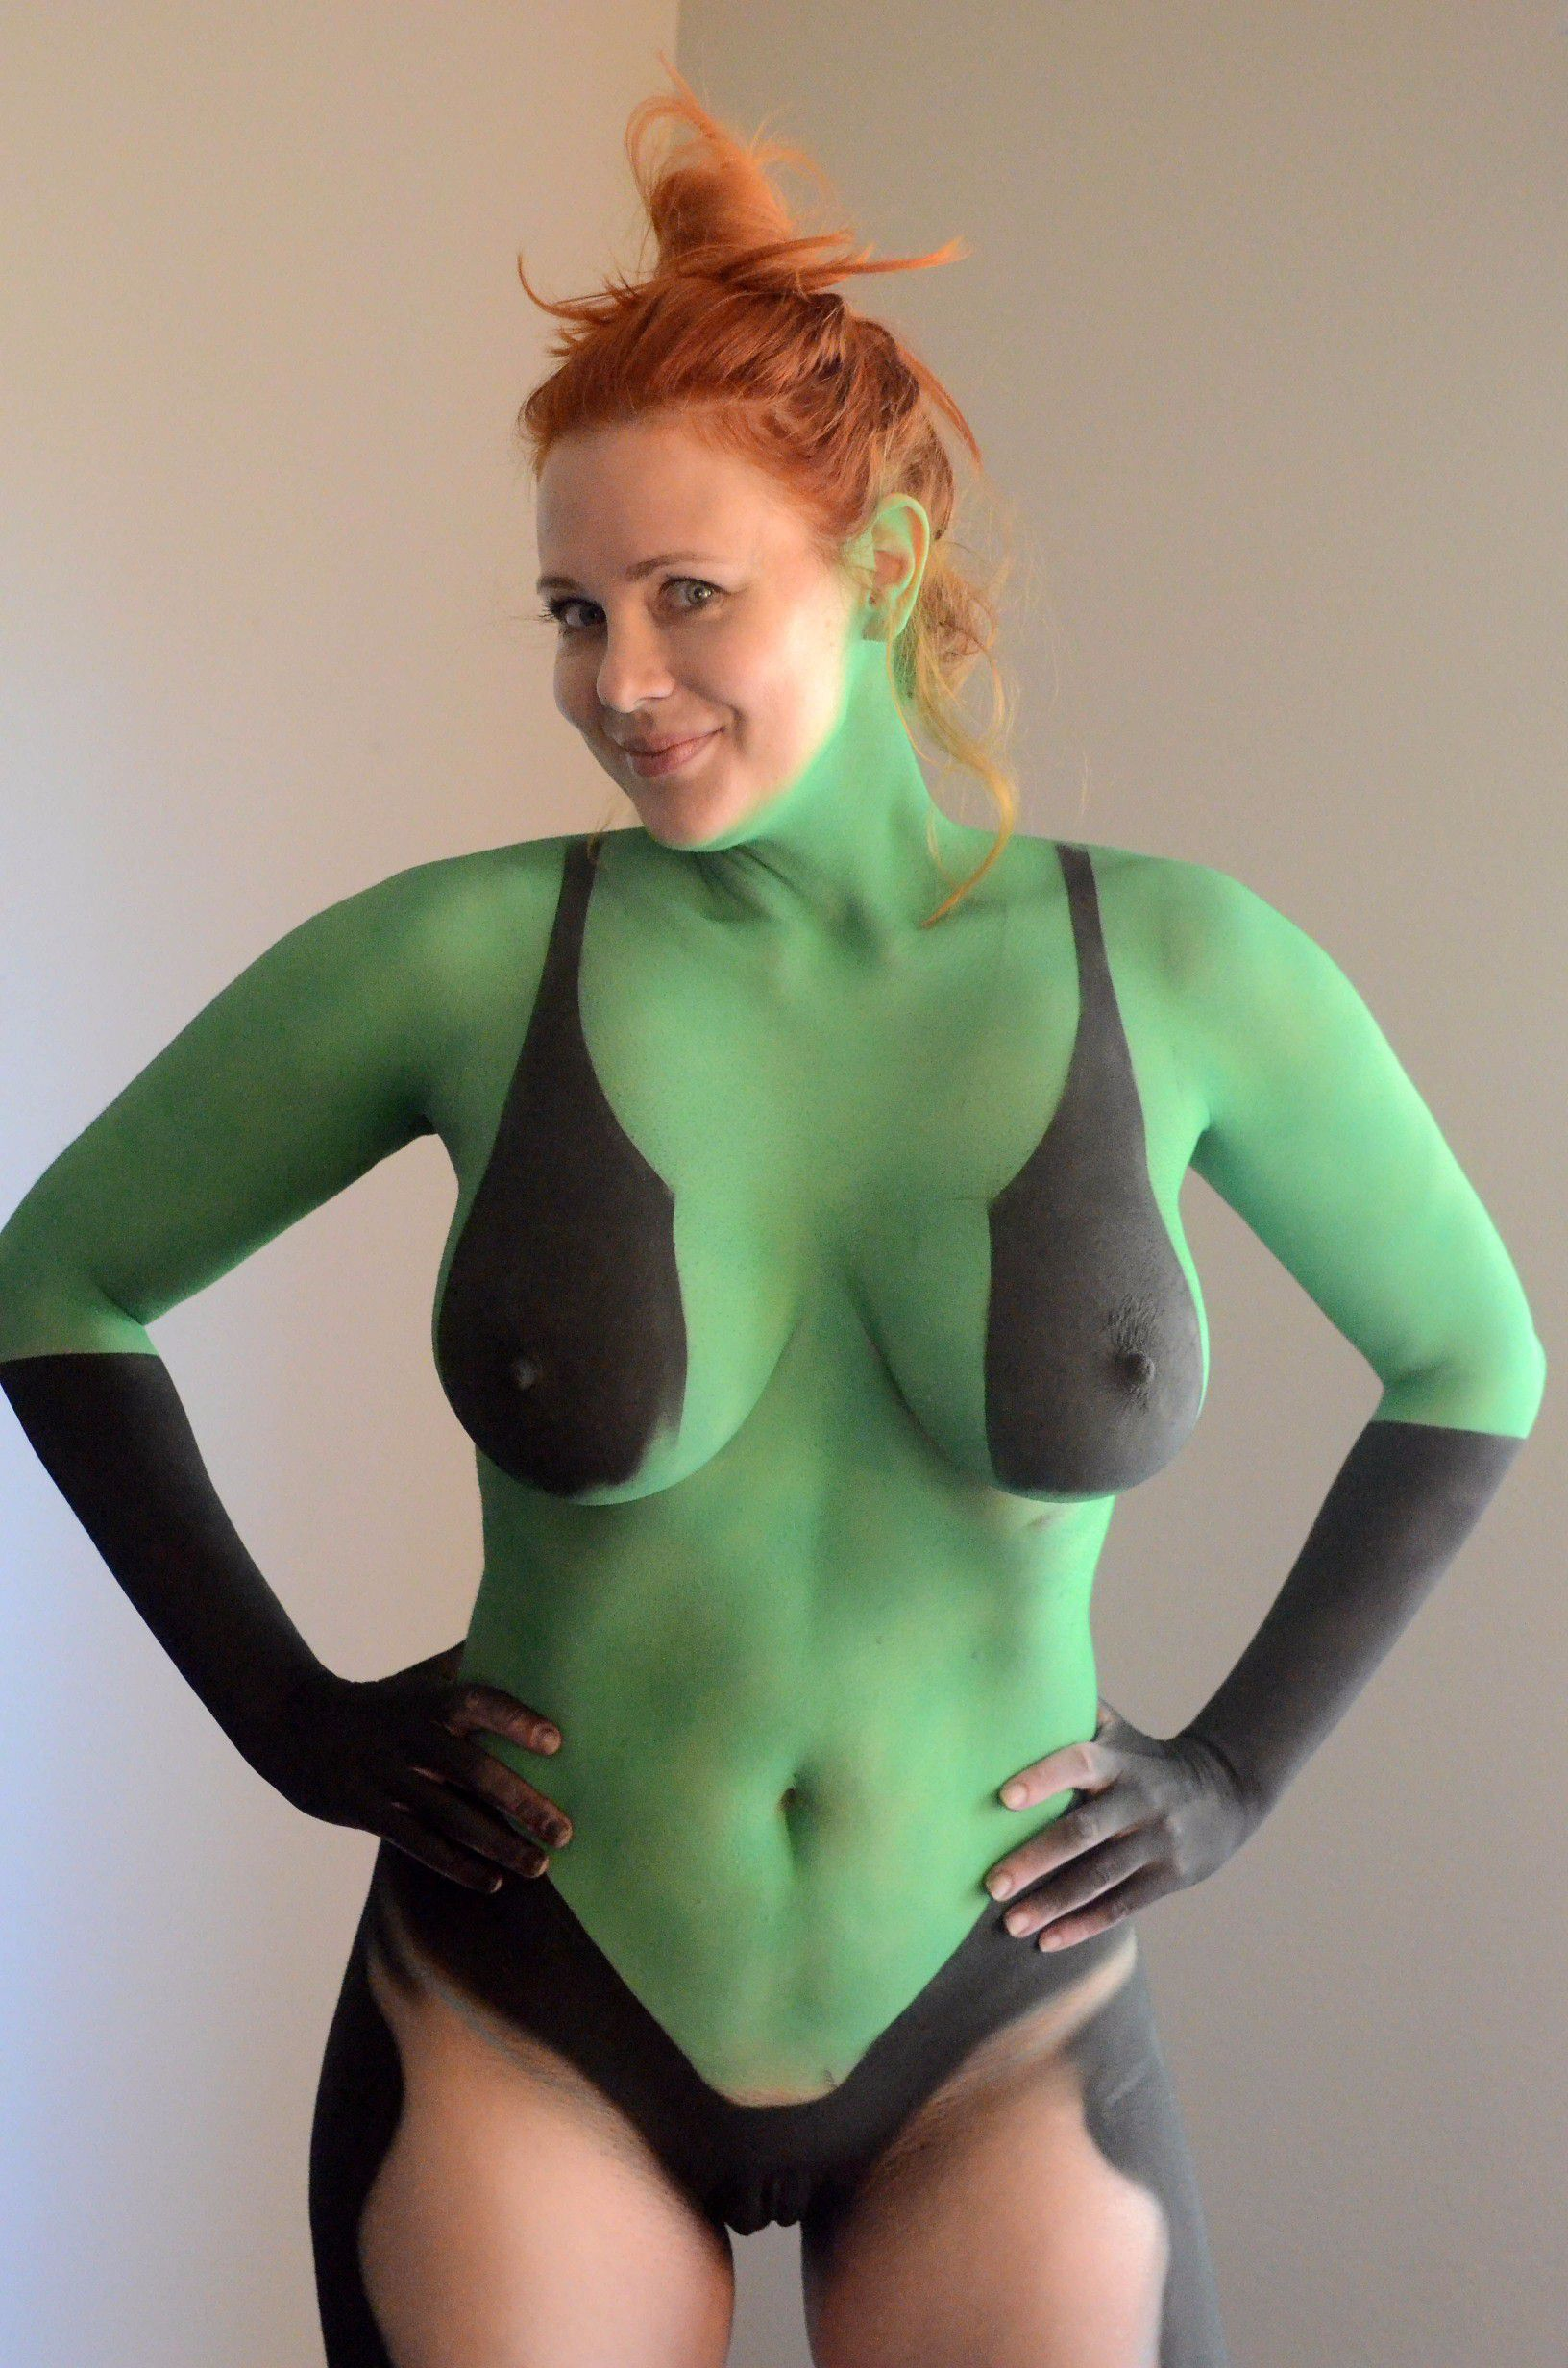 Think, that fully naked body painting assured, that